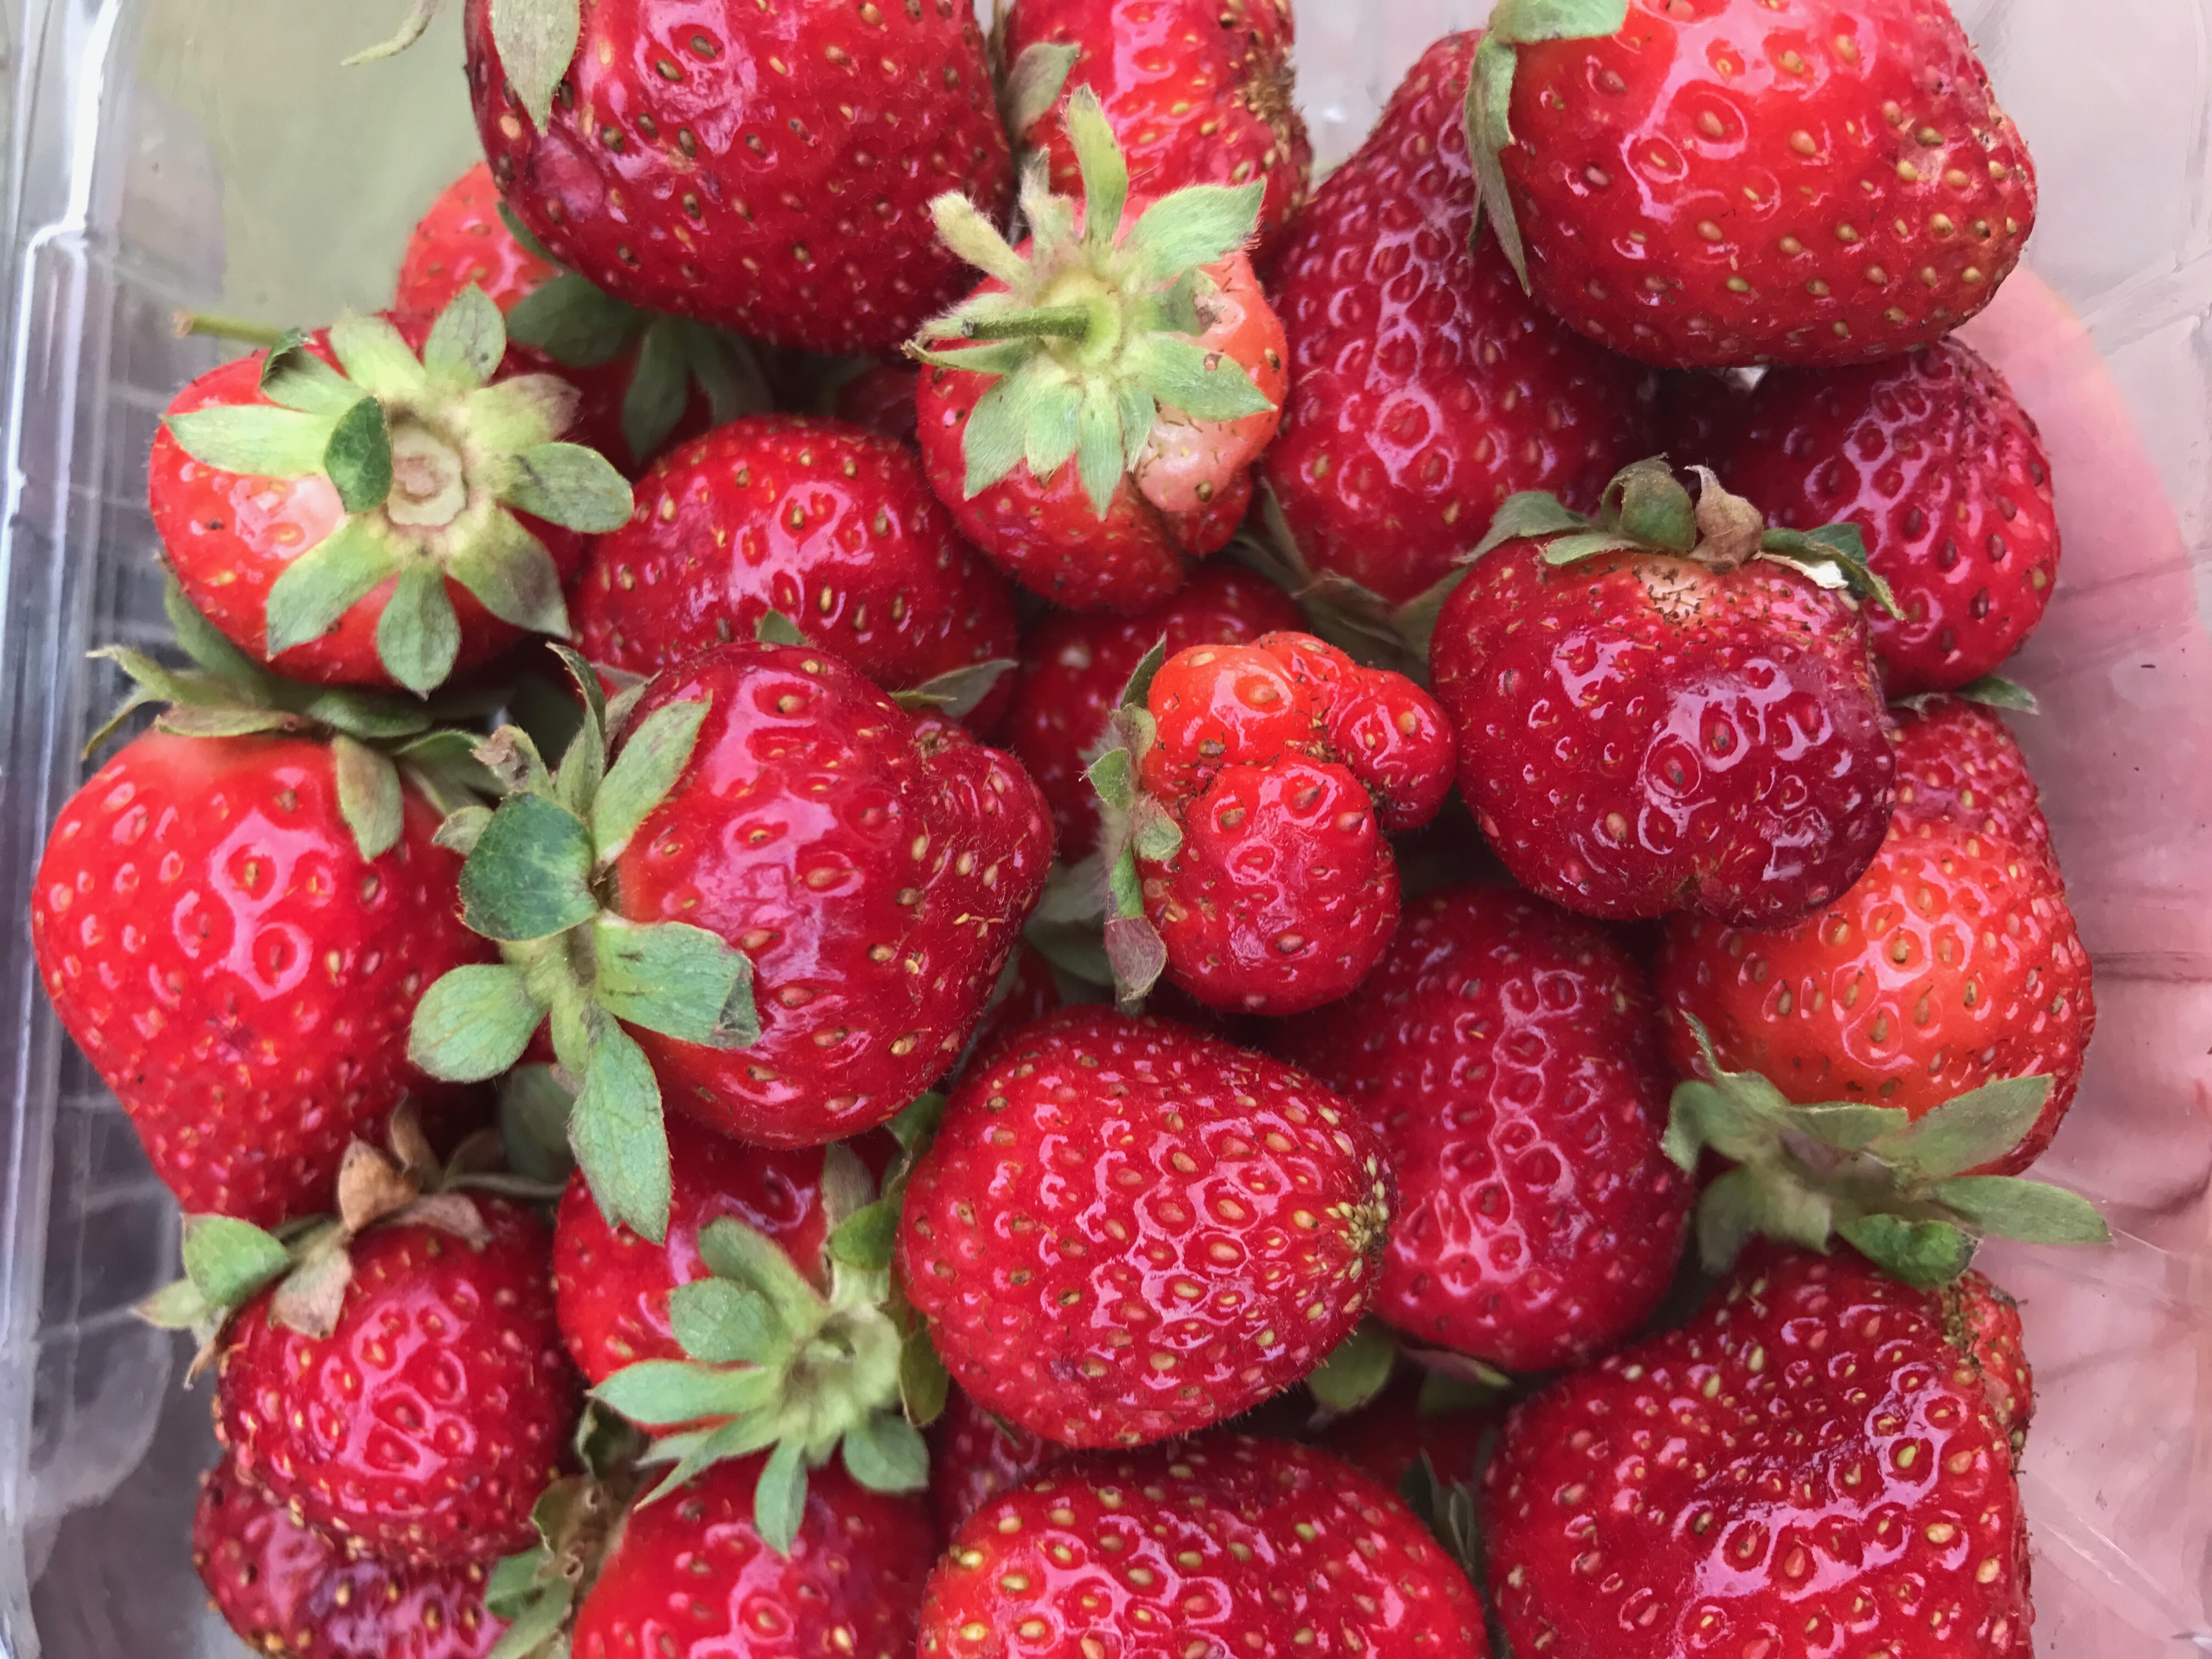 http://blueskyorganicfarms.com/wp-content/uploads/2018/02/Strawberry-Pic.jpeg